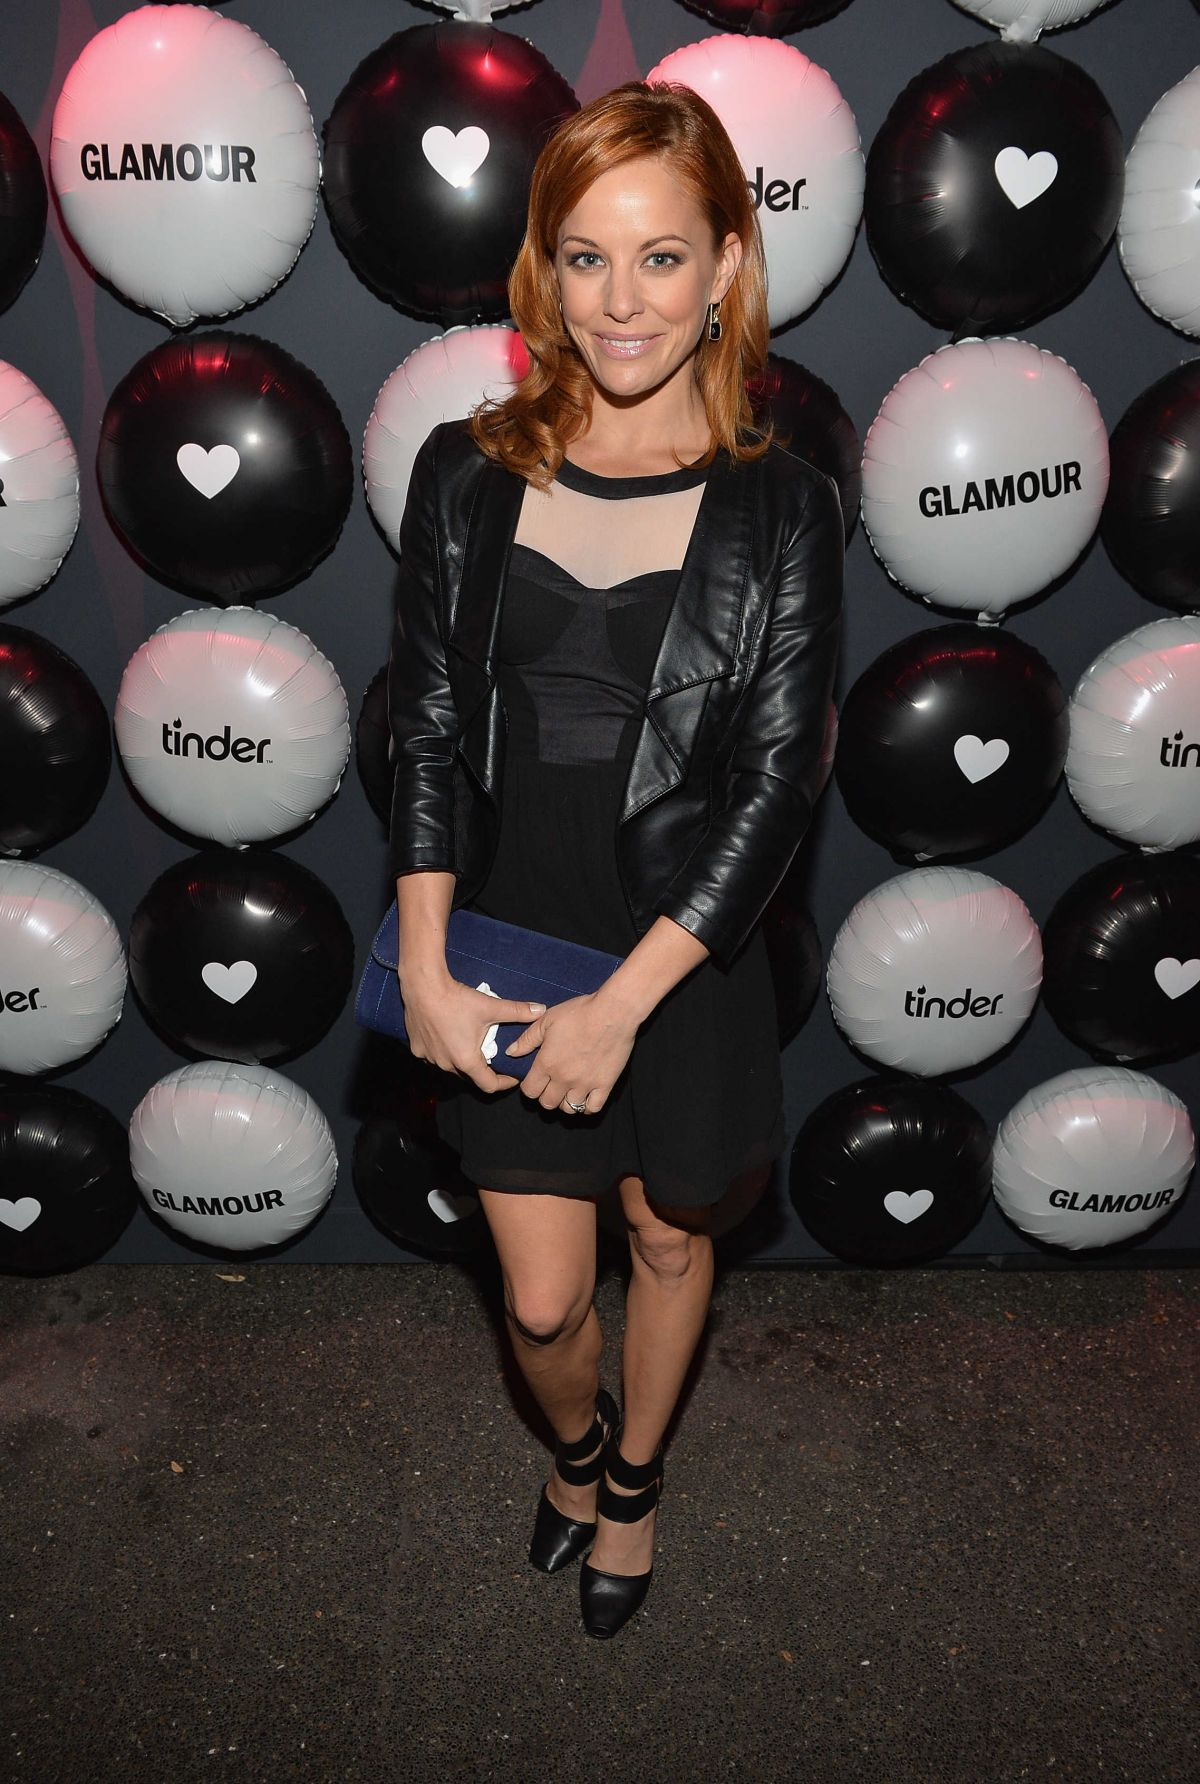 AMY PAFFRATH Celebrate Glamour Hearts Tinder at Chateau Marmont in Hollywood